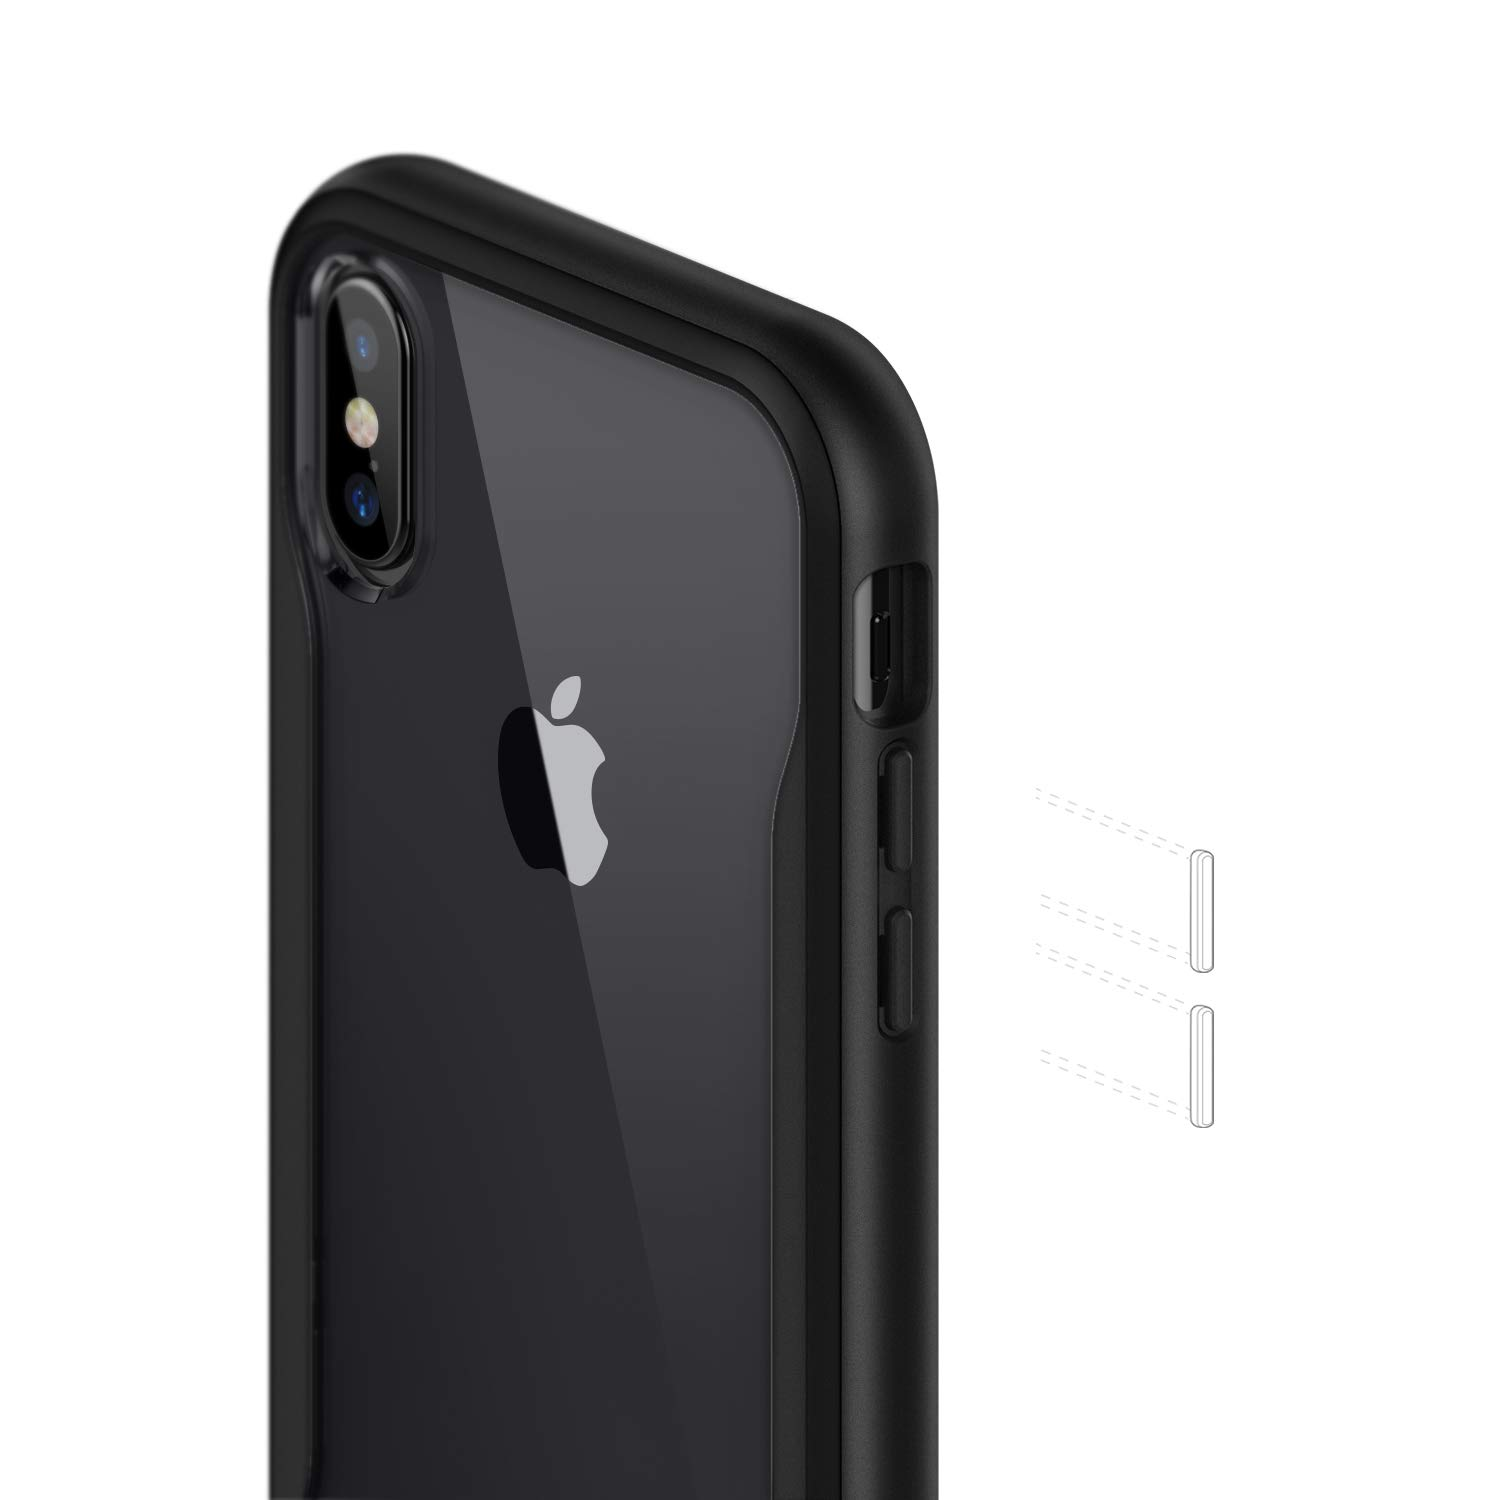 2018 // iPhone X Case 2017 - Slim /& Transparent White Gray Caseology Coastline for iPhone Xs Case